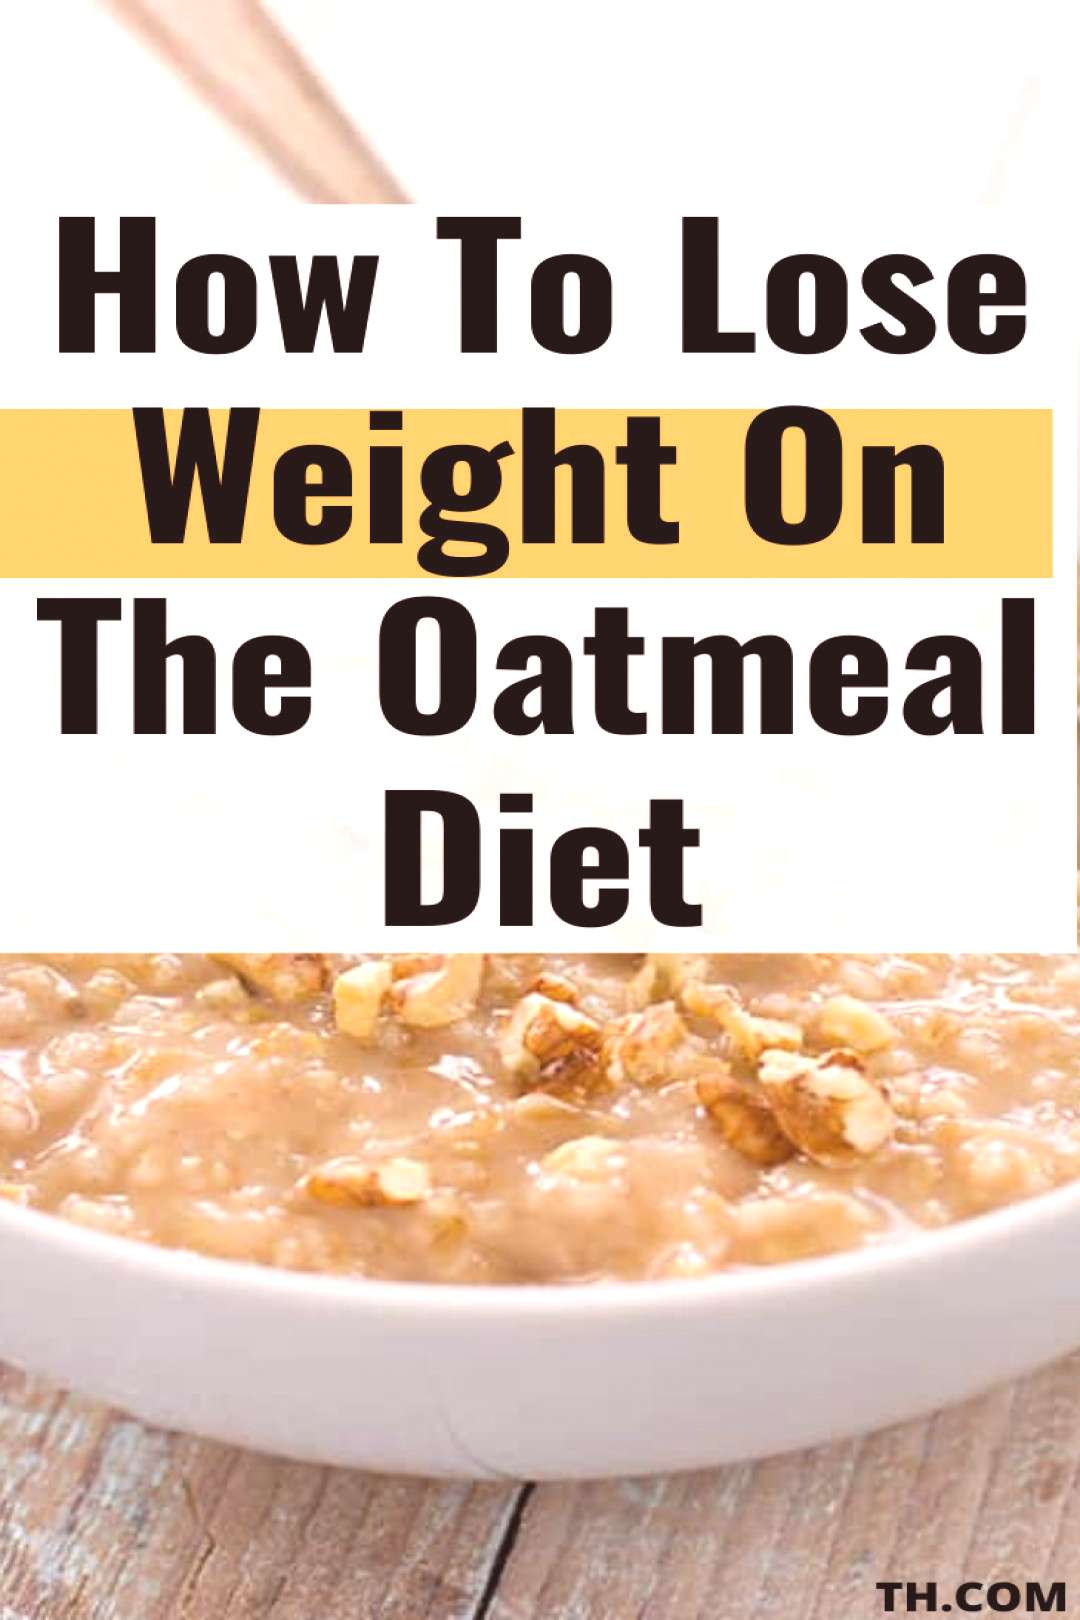 How to Lose Weight on the Oatmeal Diet – Oats Recipe for Weight Loss, Healthy Diet -